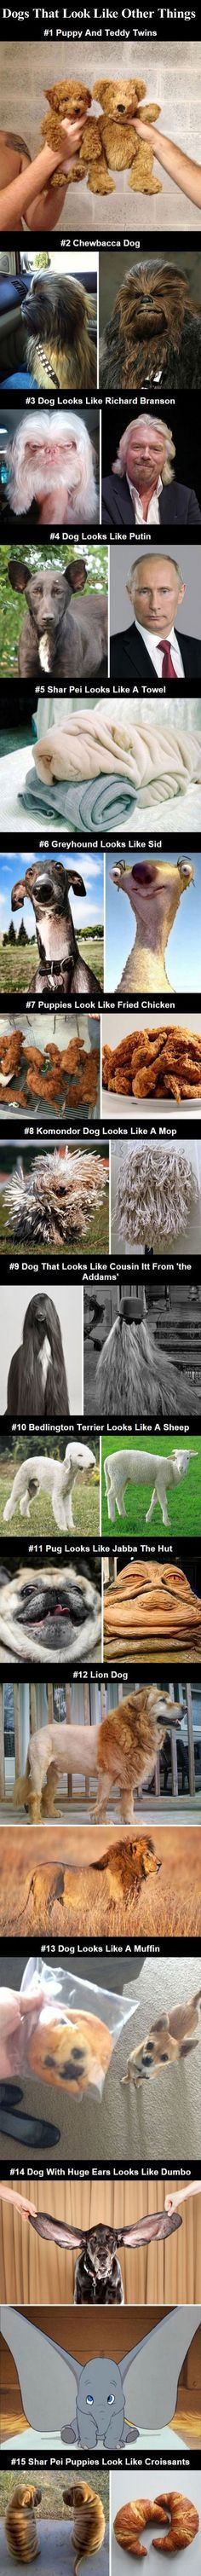 Dogs That Look Like Other Things cute animals dogs adorable dog puppy animal pets puppies humor funny pictures funny animals funny pets funny dogs